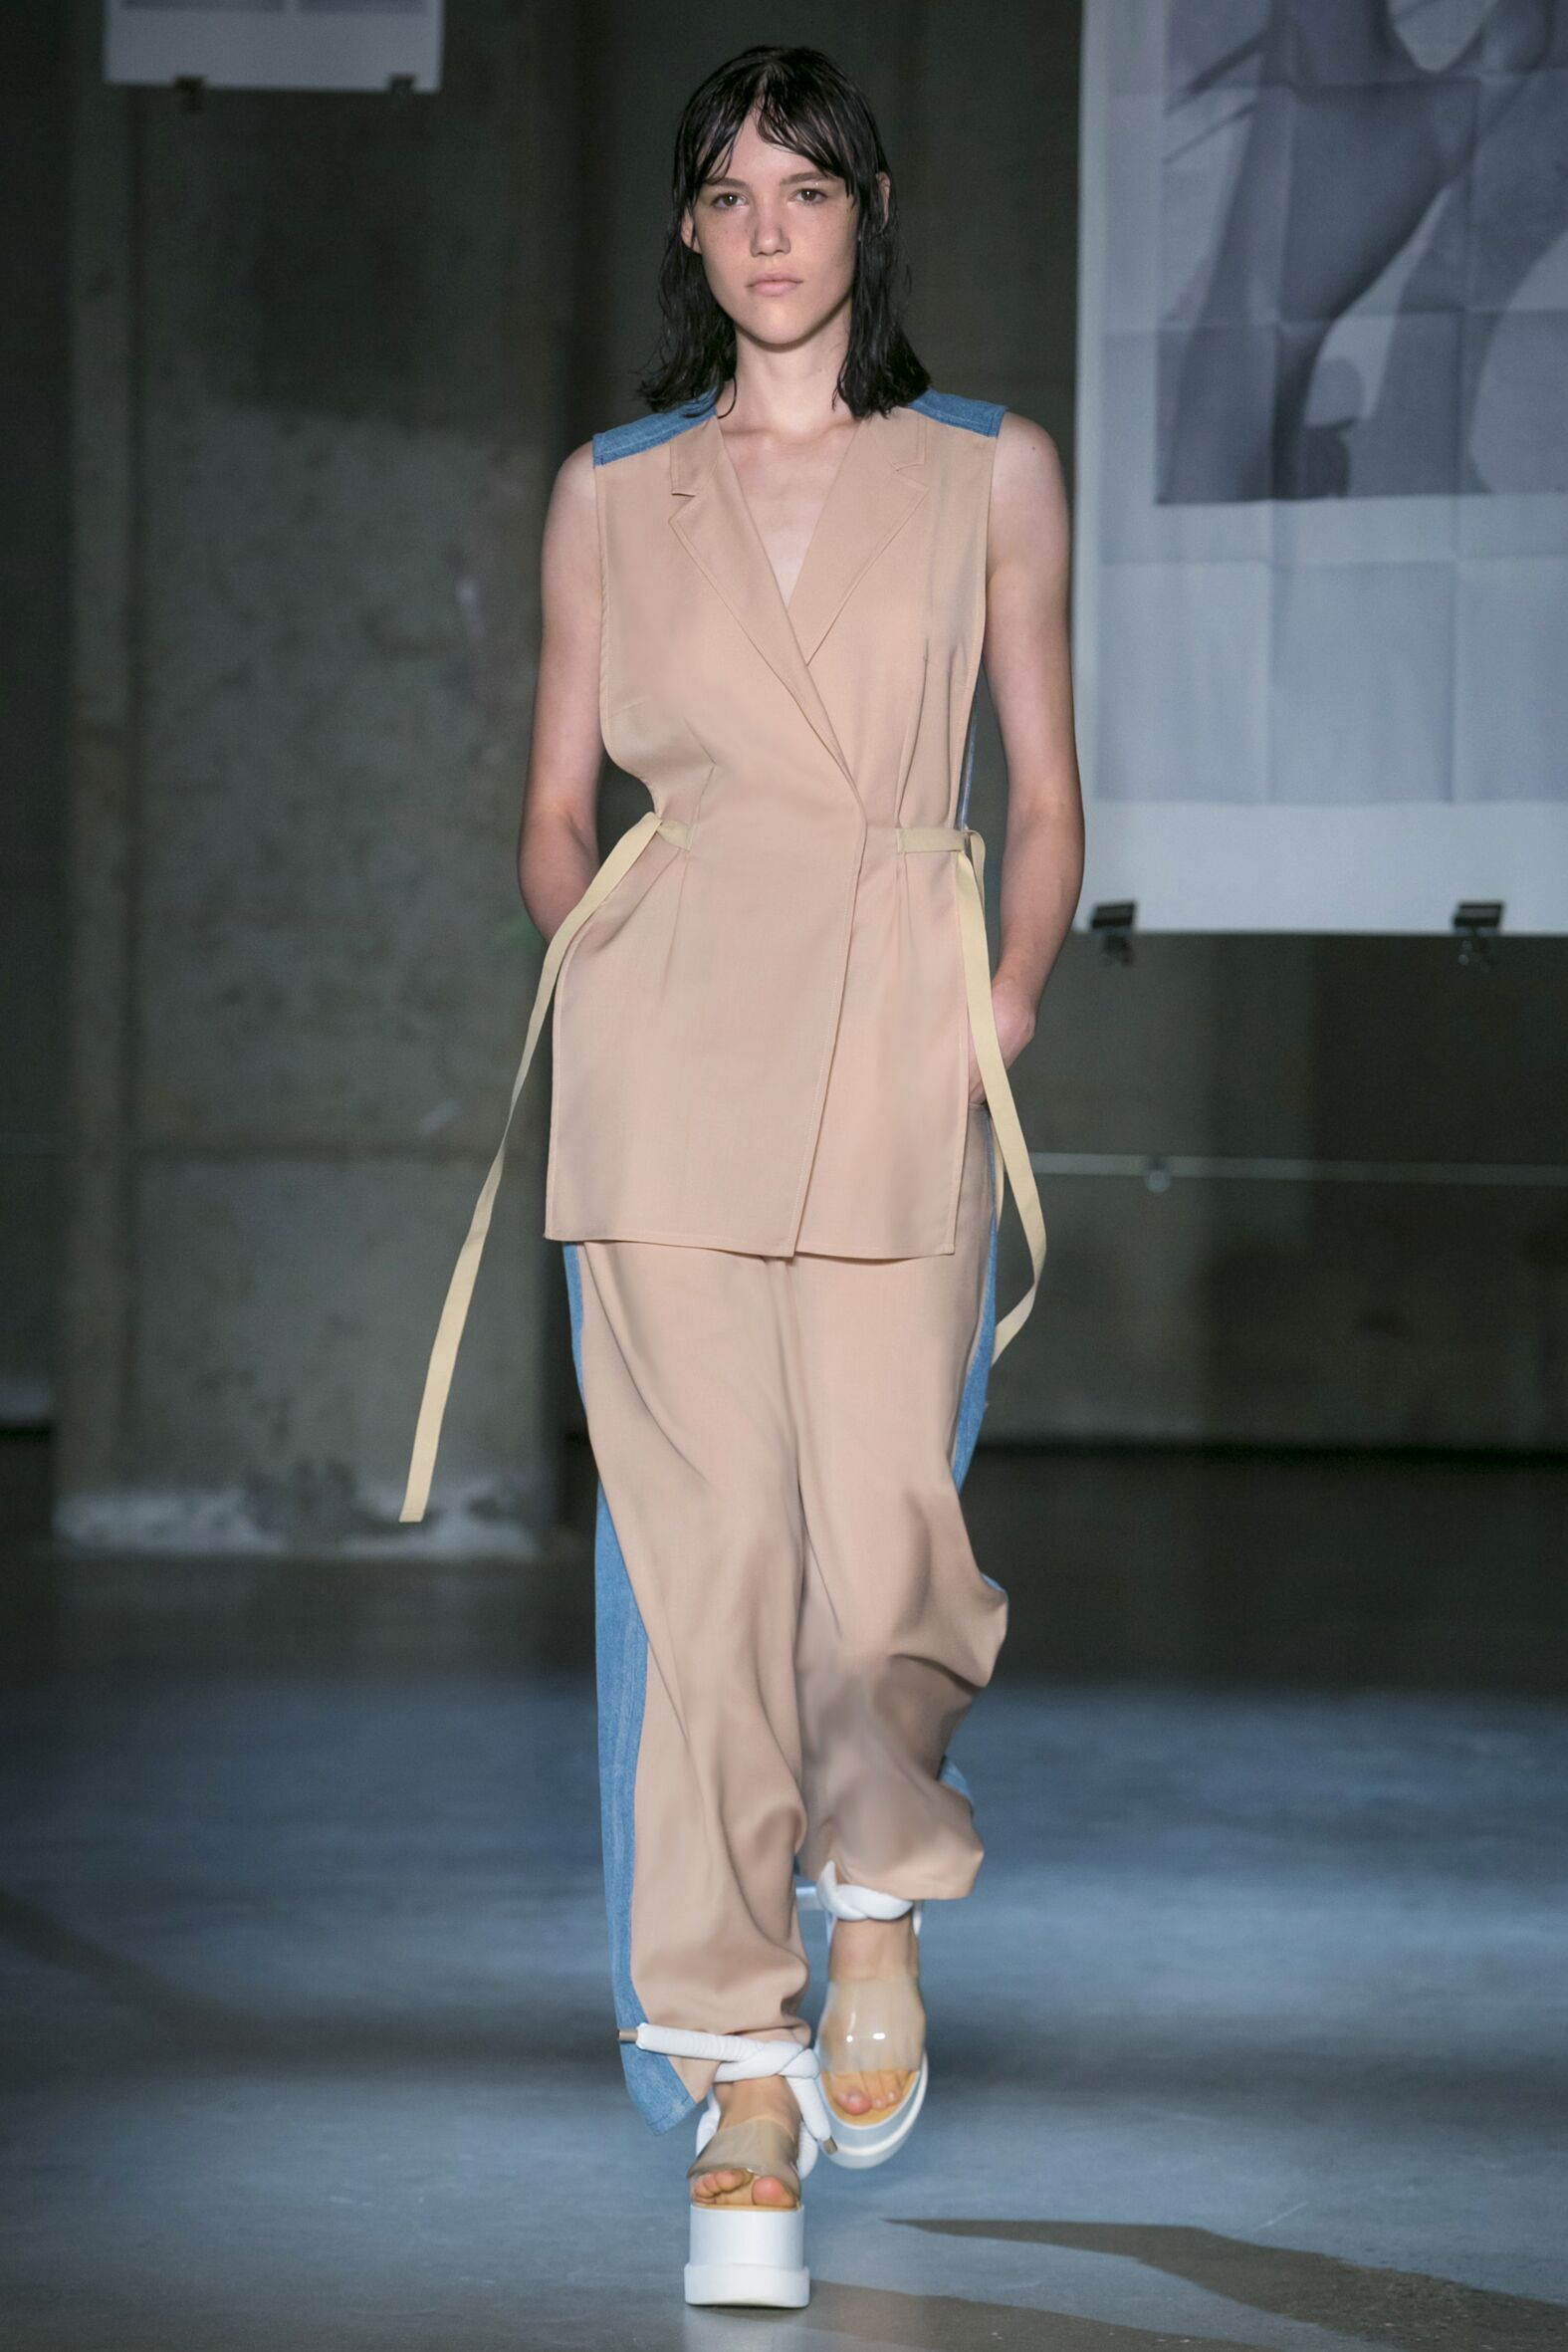 Fashion Woman Model MM6 Maison Martin Margiela Catwalk